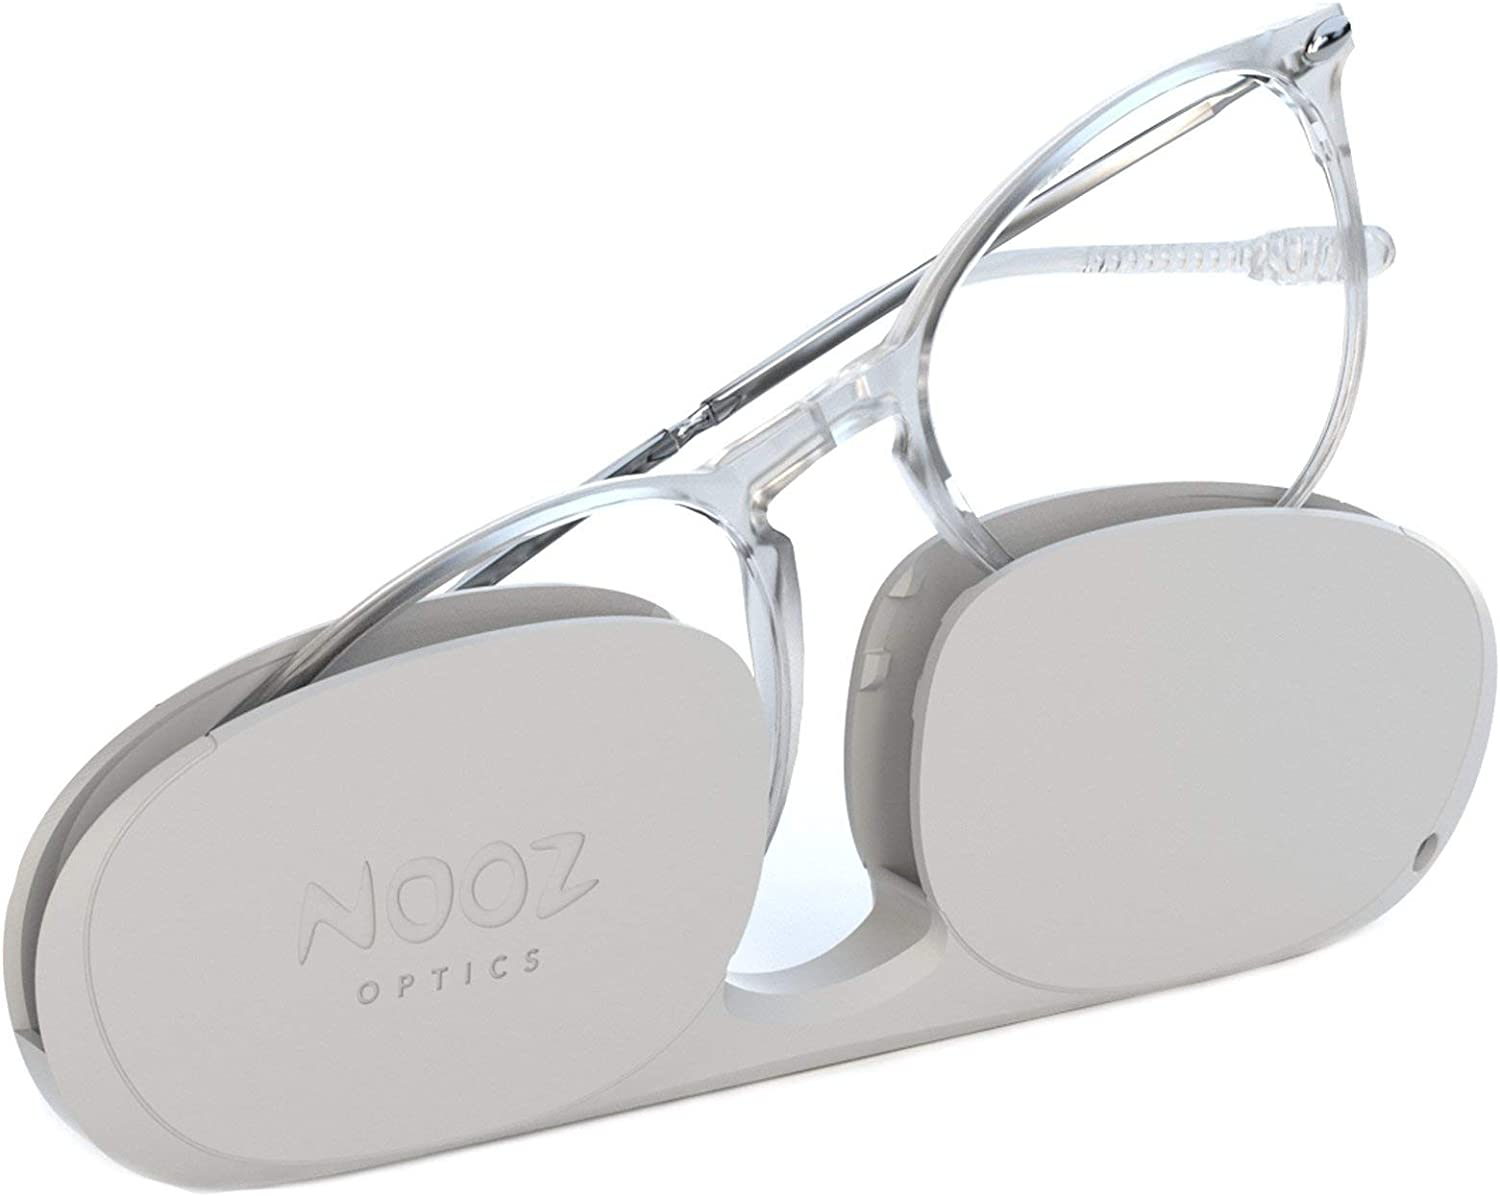 Nooz Optics Super beauty product restock quality top Reading Glasses - Shape Readers Magnifying Indefinitely fo Oval